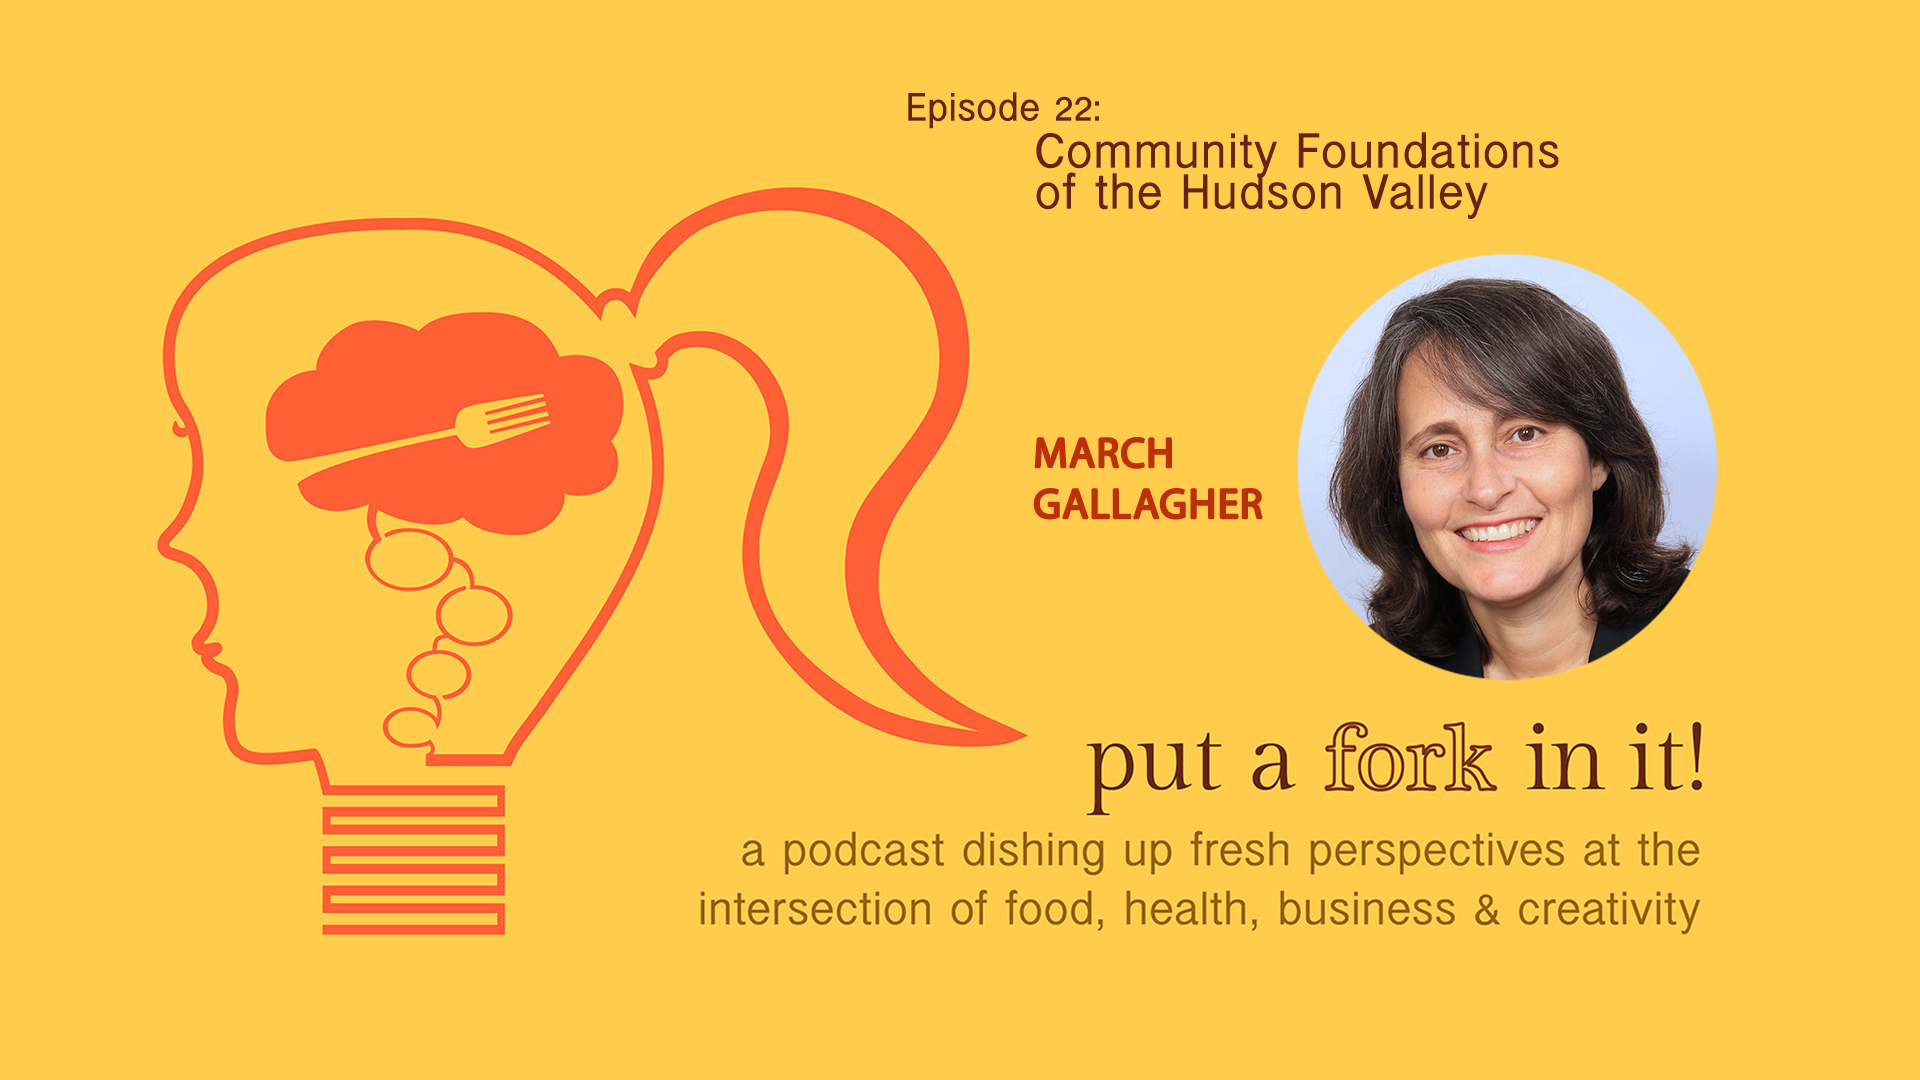 Episode 22: March Gallagher, Community Foundations of the Hudson Valley and Feed HV